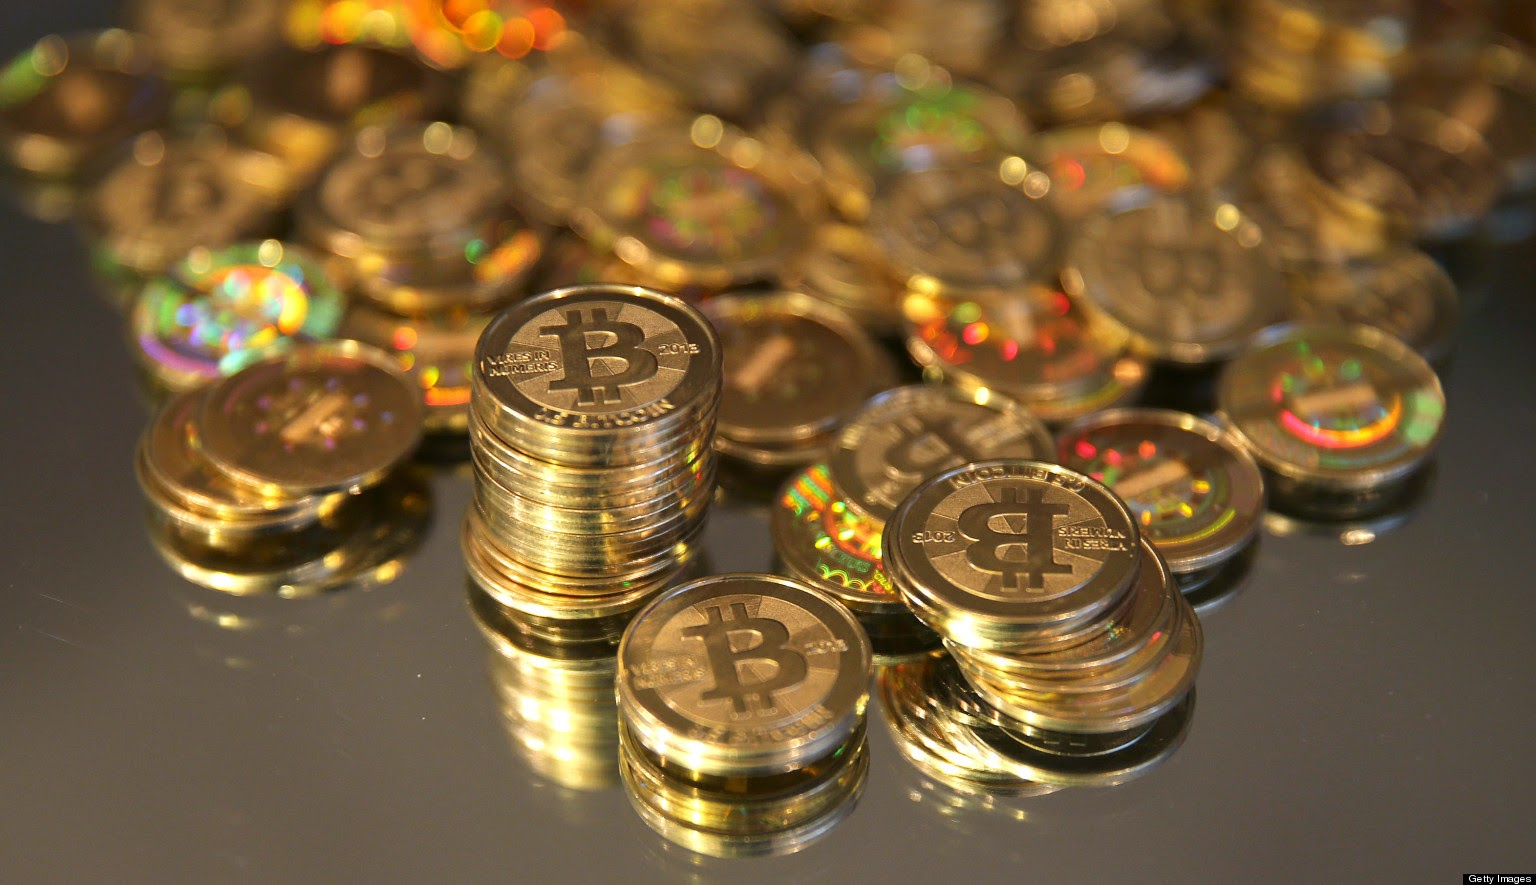 Some bitcoins, one of the internet virtual coins